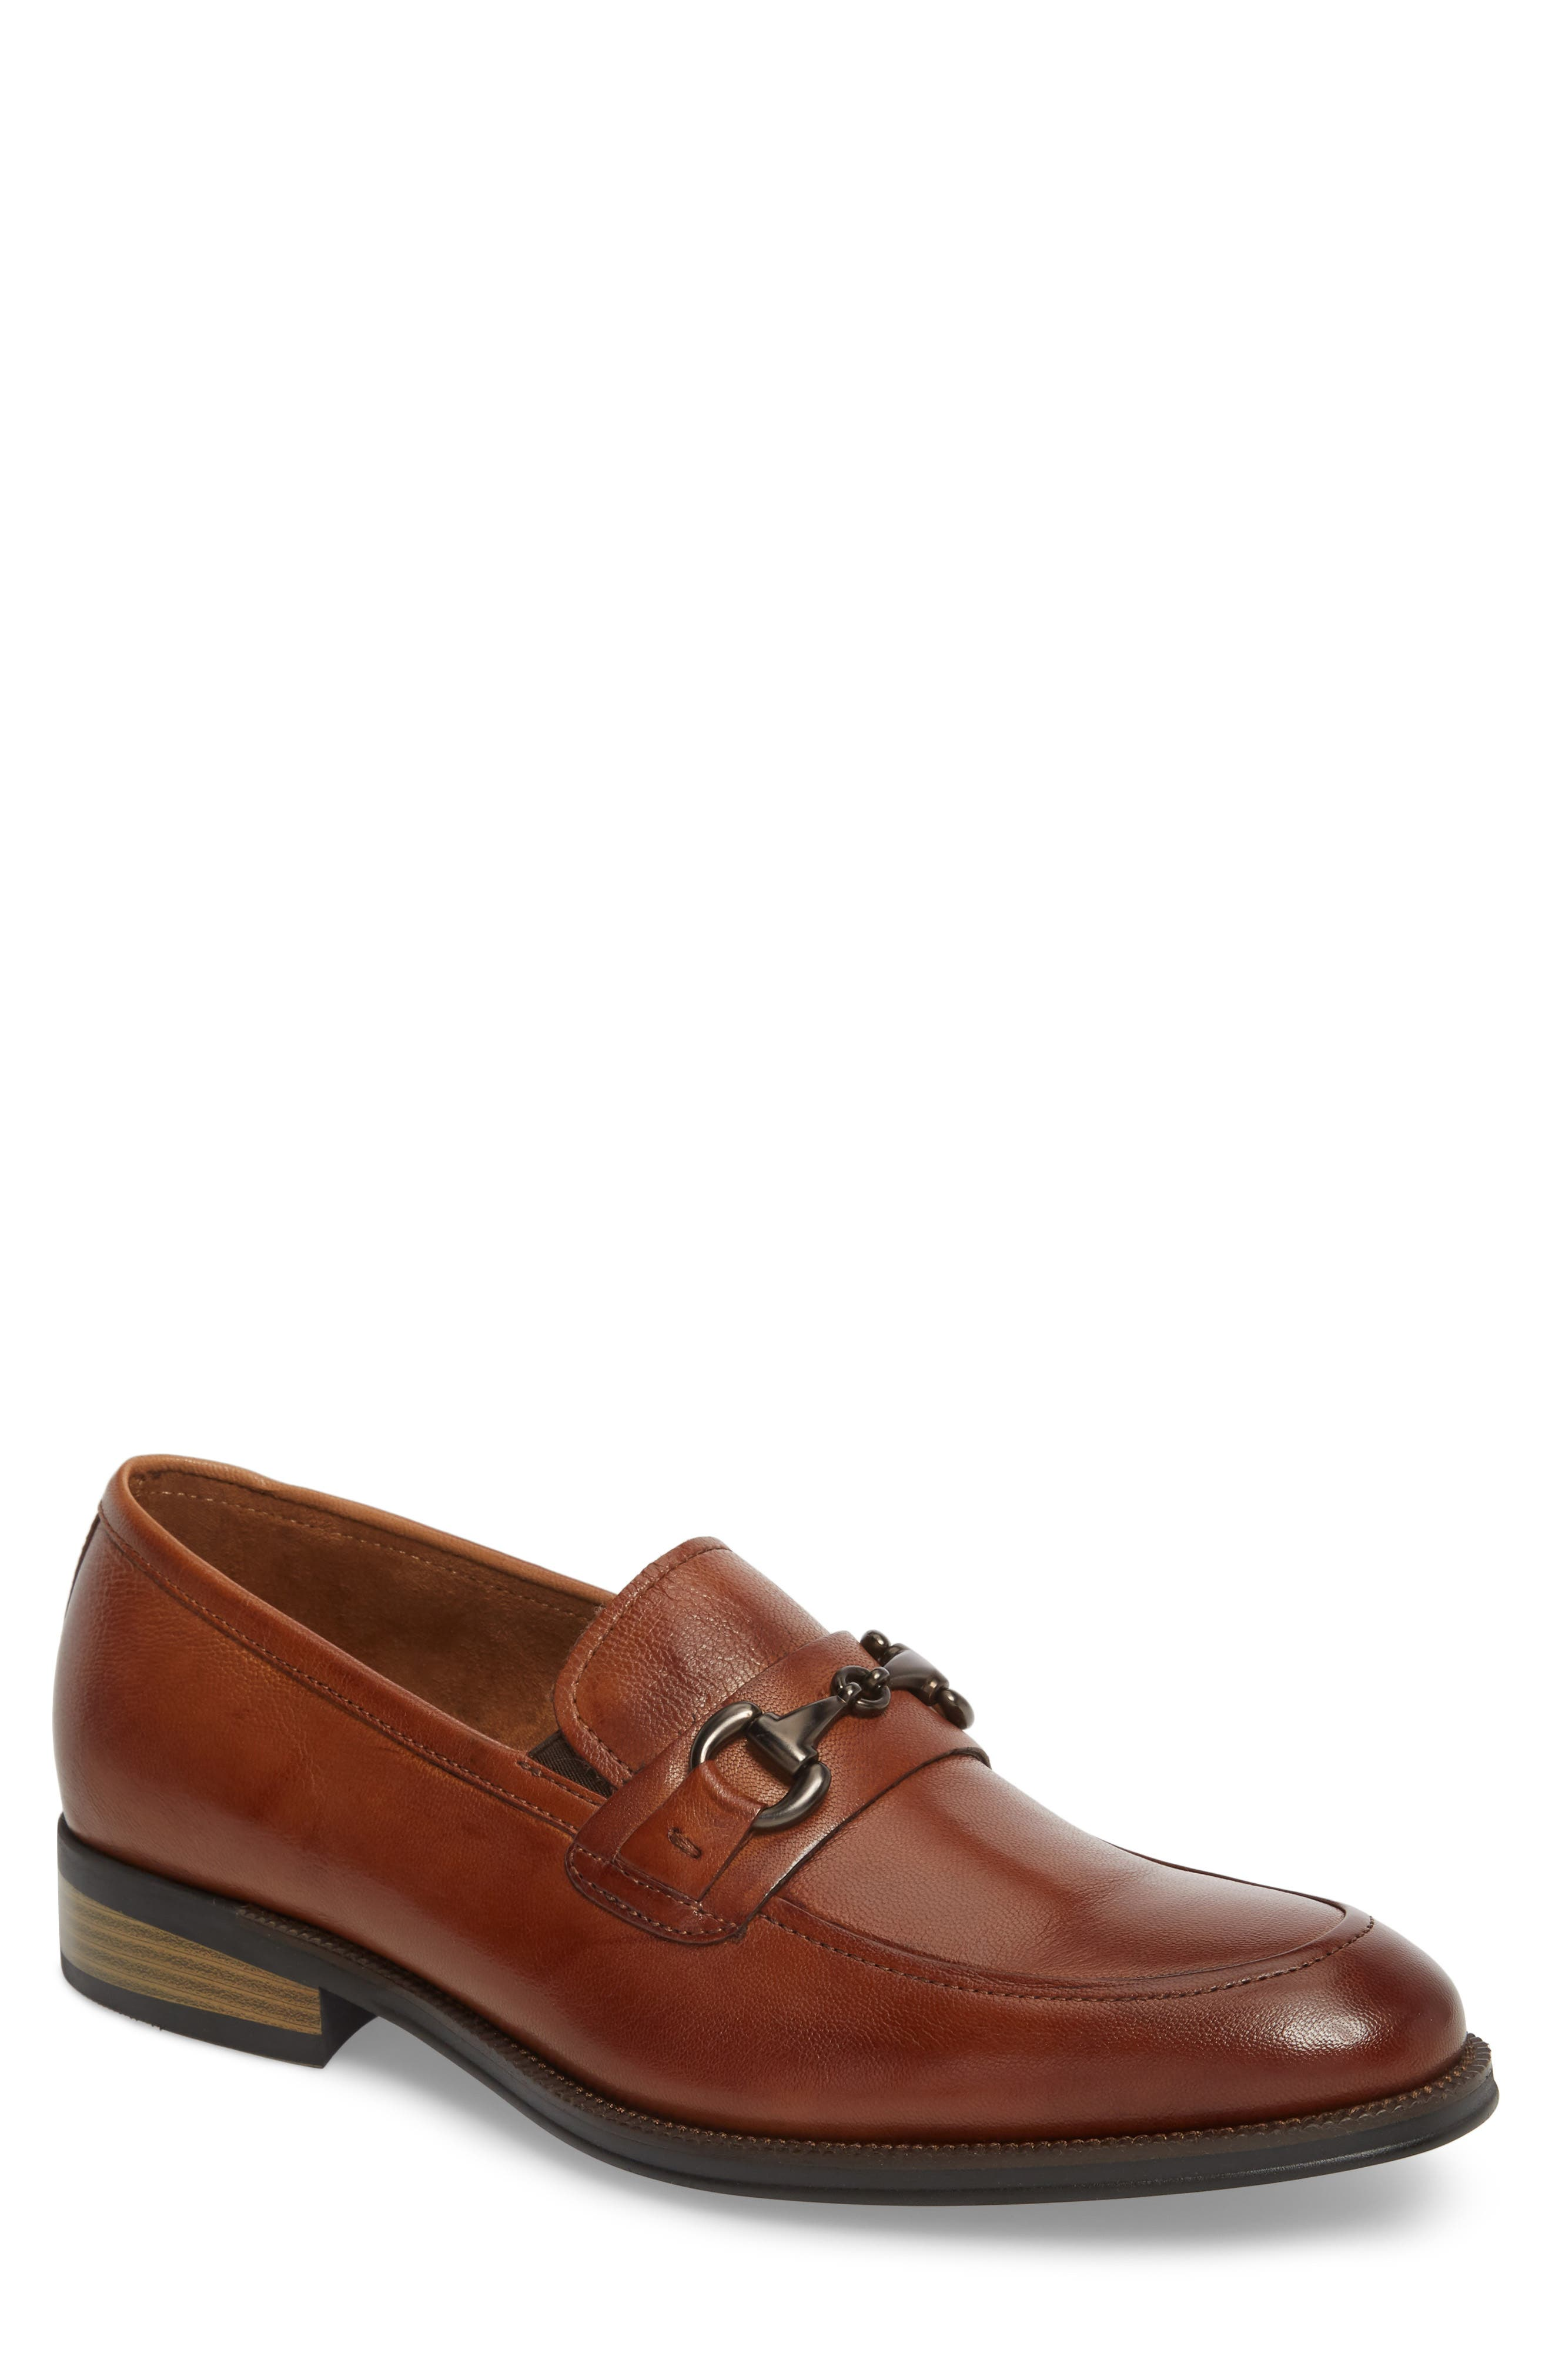 KENNETH COLE NEW YORK, Brock Bit Loafer, Main thumbnail 1, color, COGNAC LEATHER